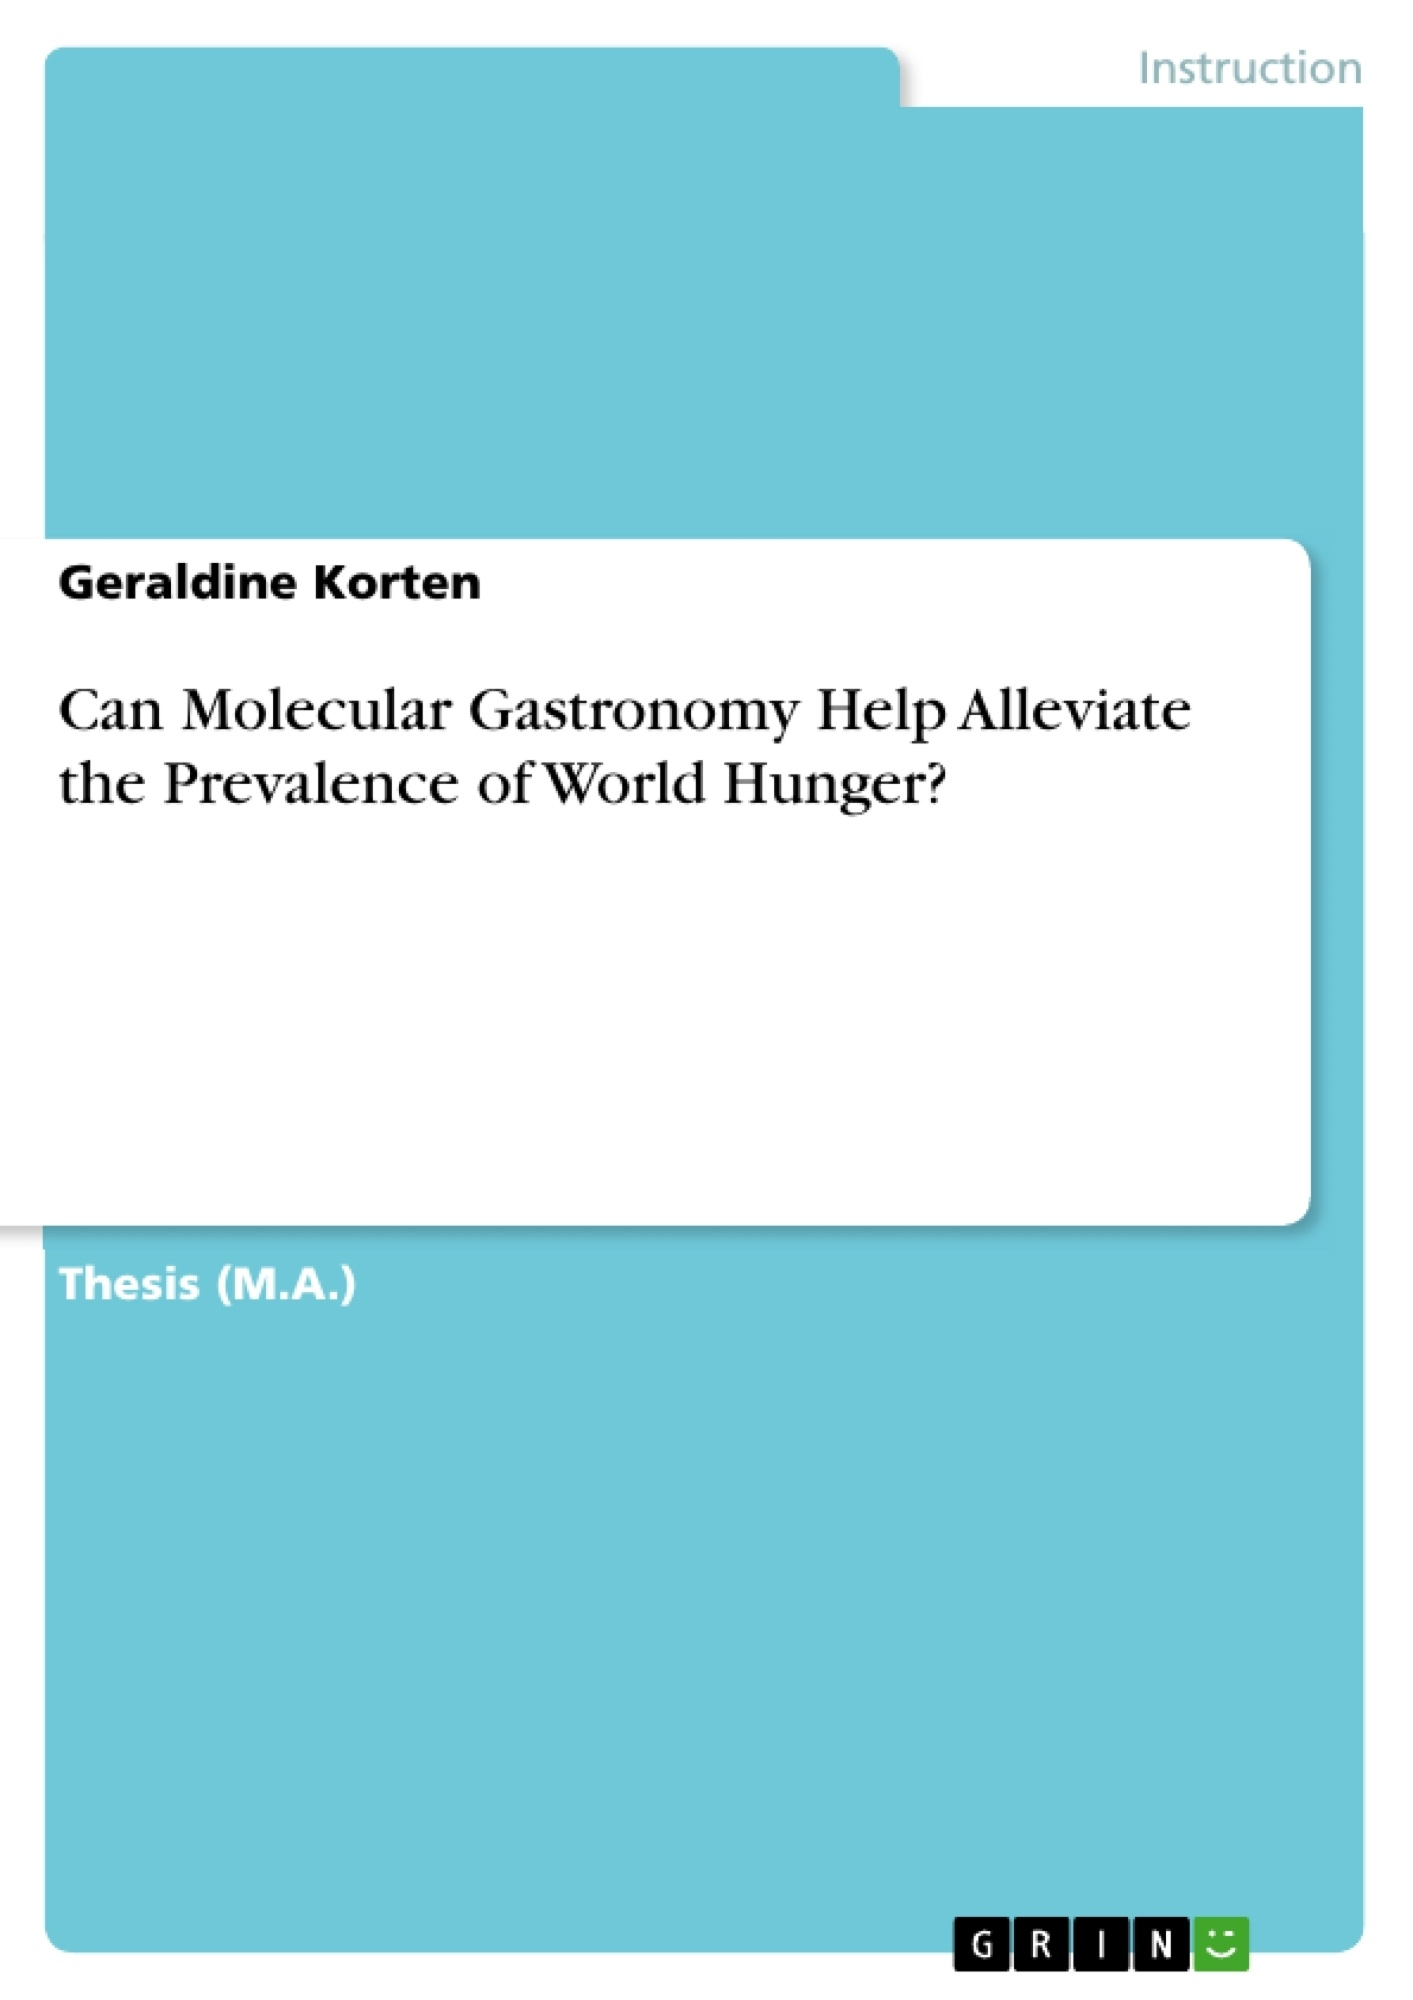 Title: Can Molecular Gastronomy Help Alleviate the Prevalence of World Hunger?